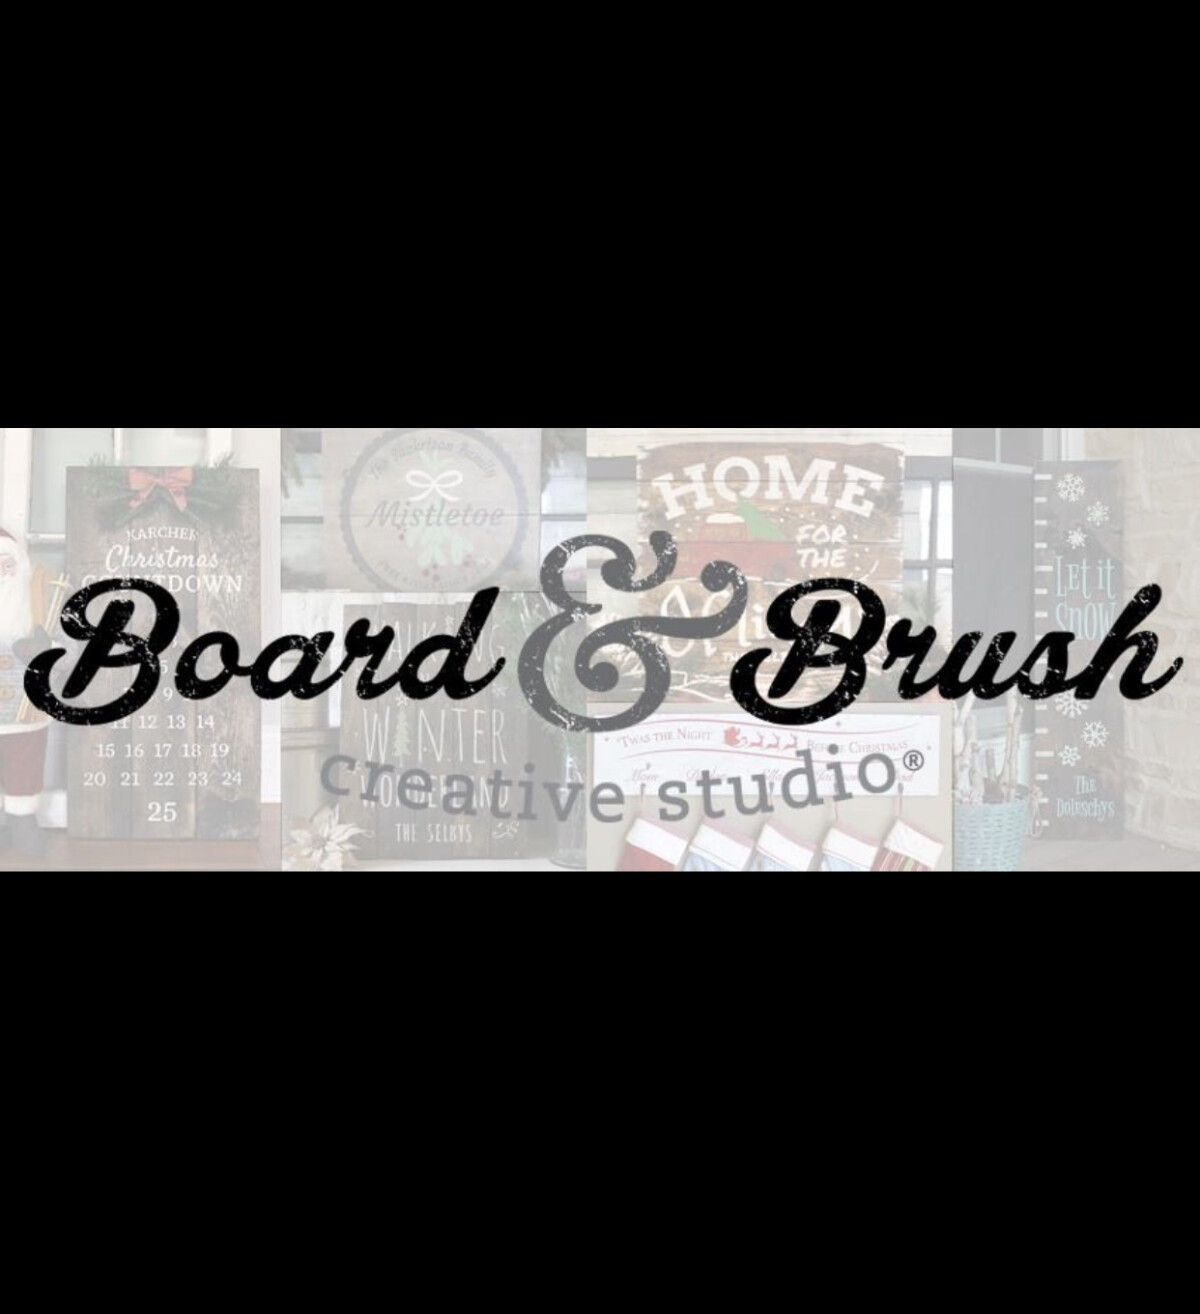 Women's Board & Brush Workshop